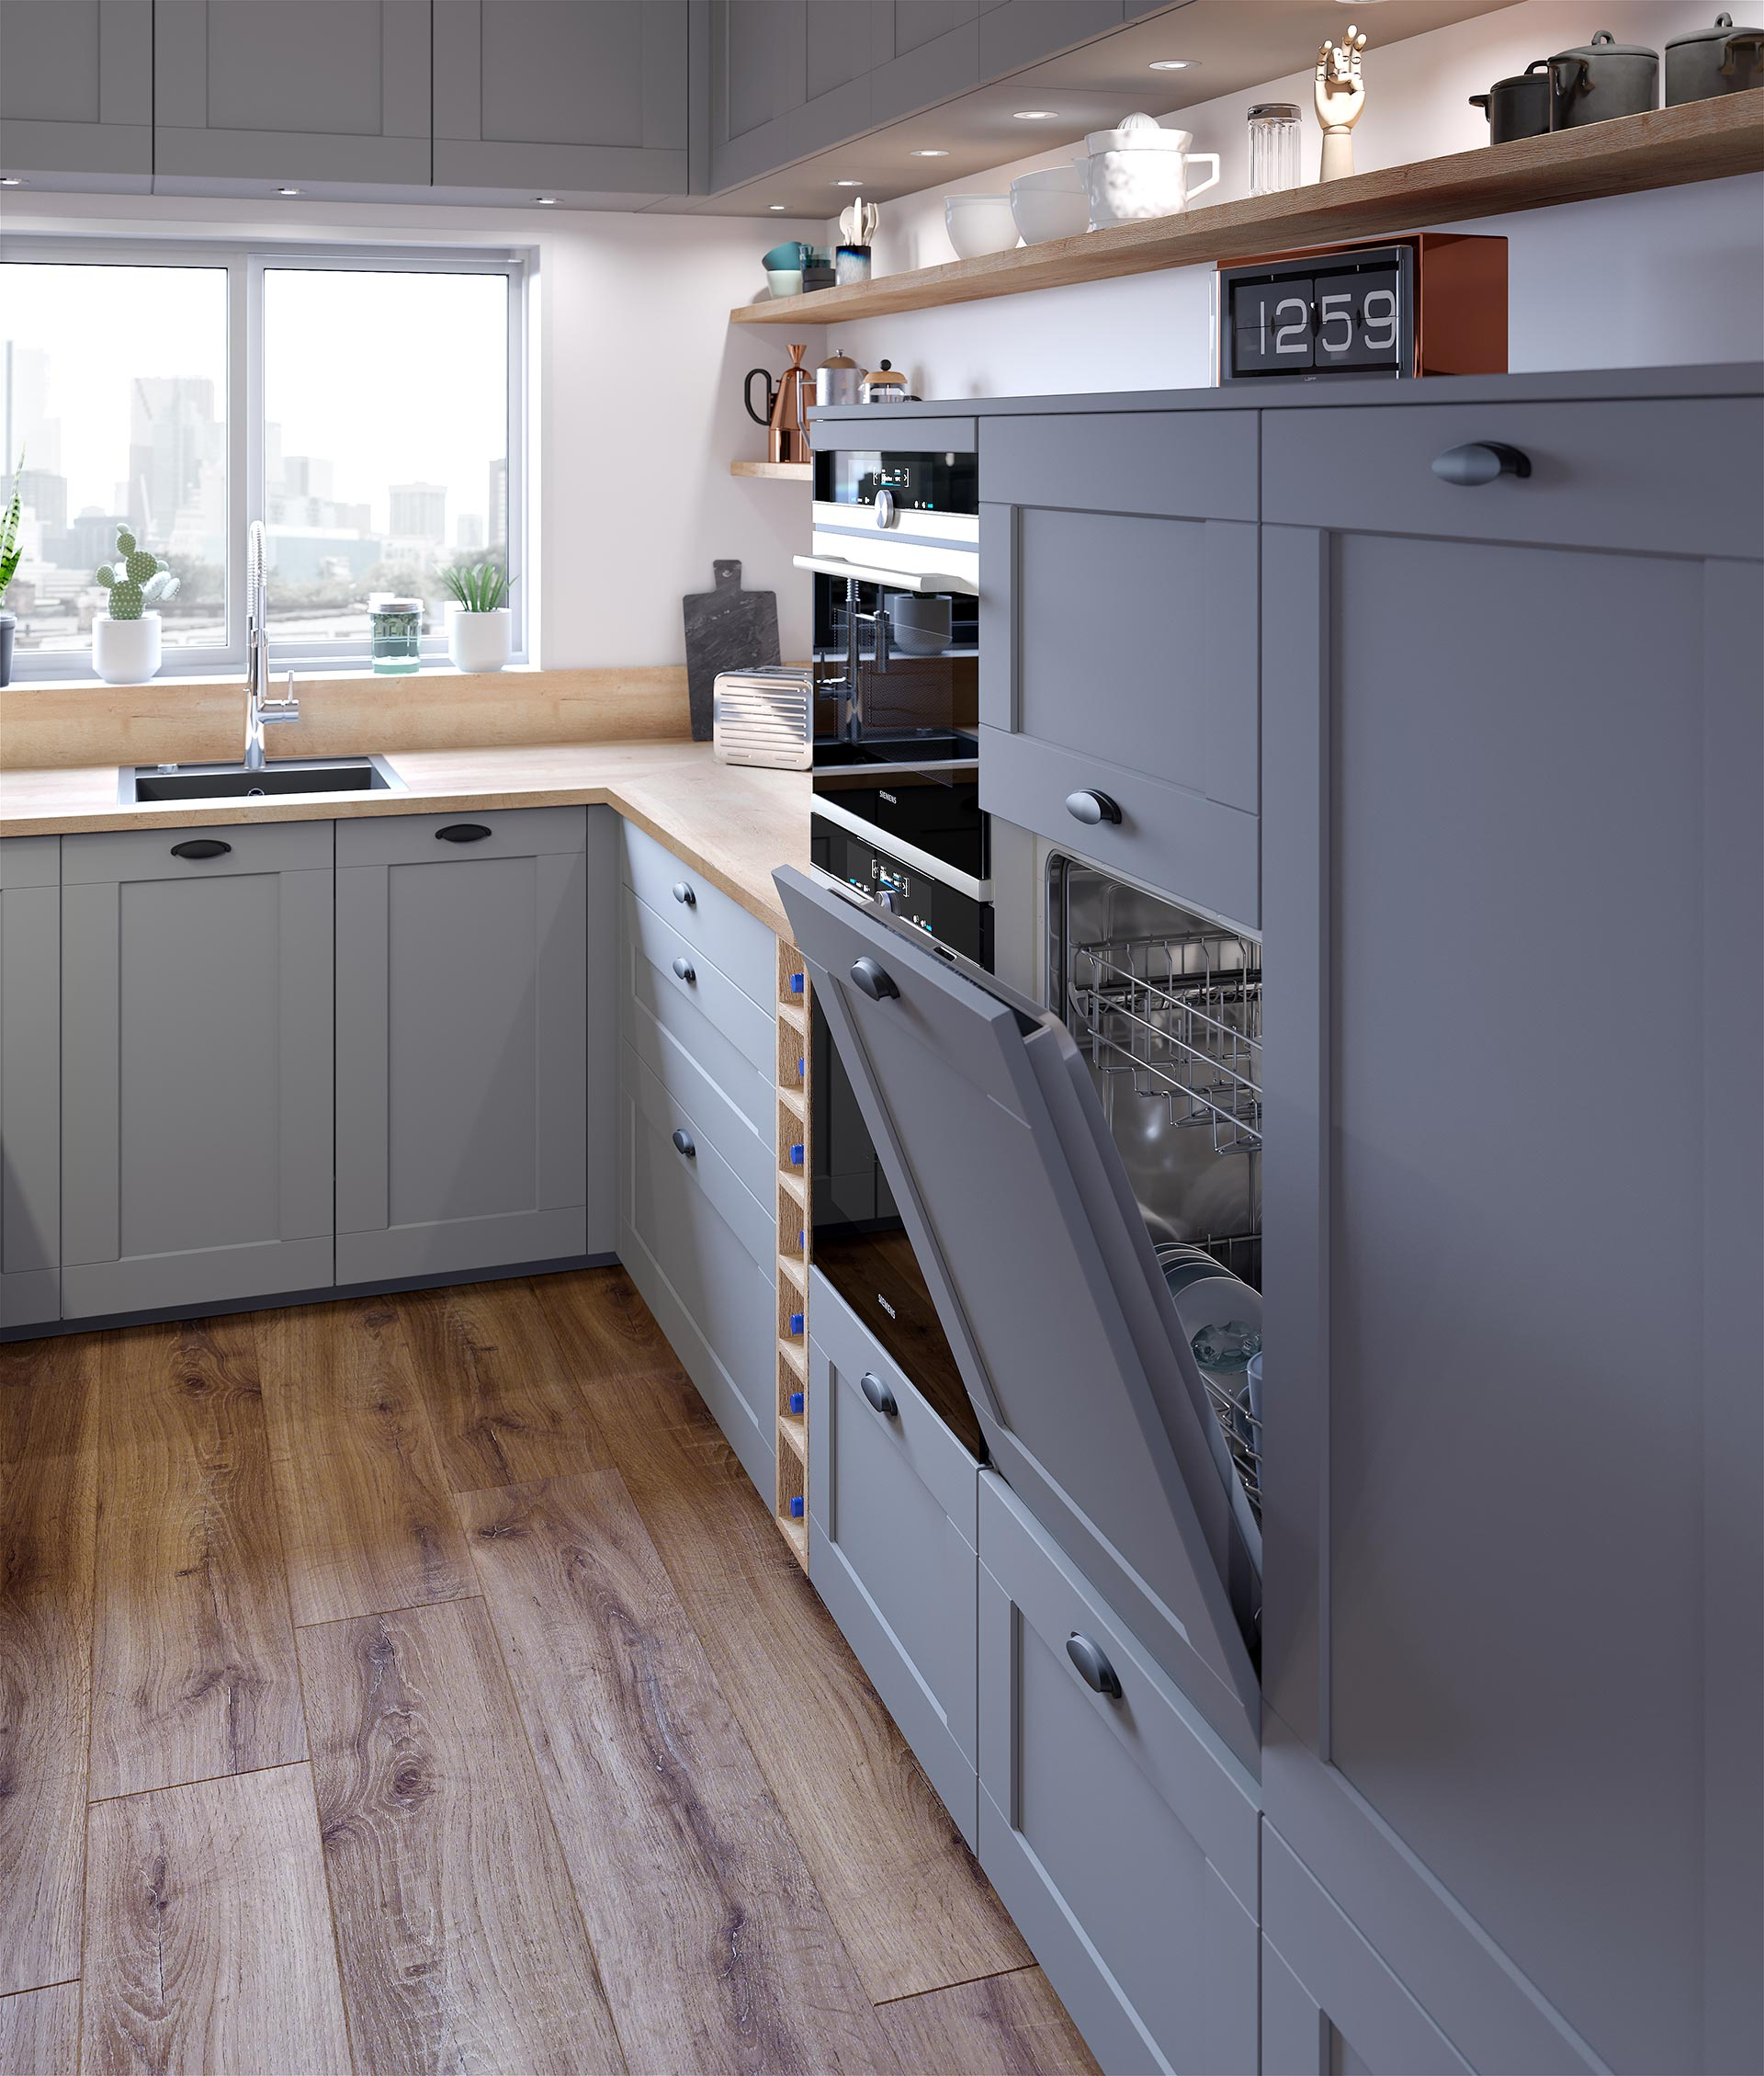 3D perspective of a dishwasher in a brooklyn style kitchen